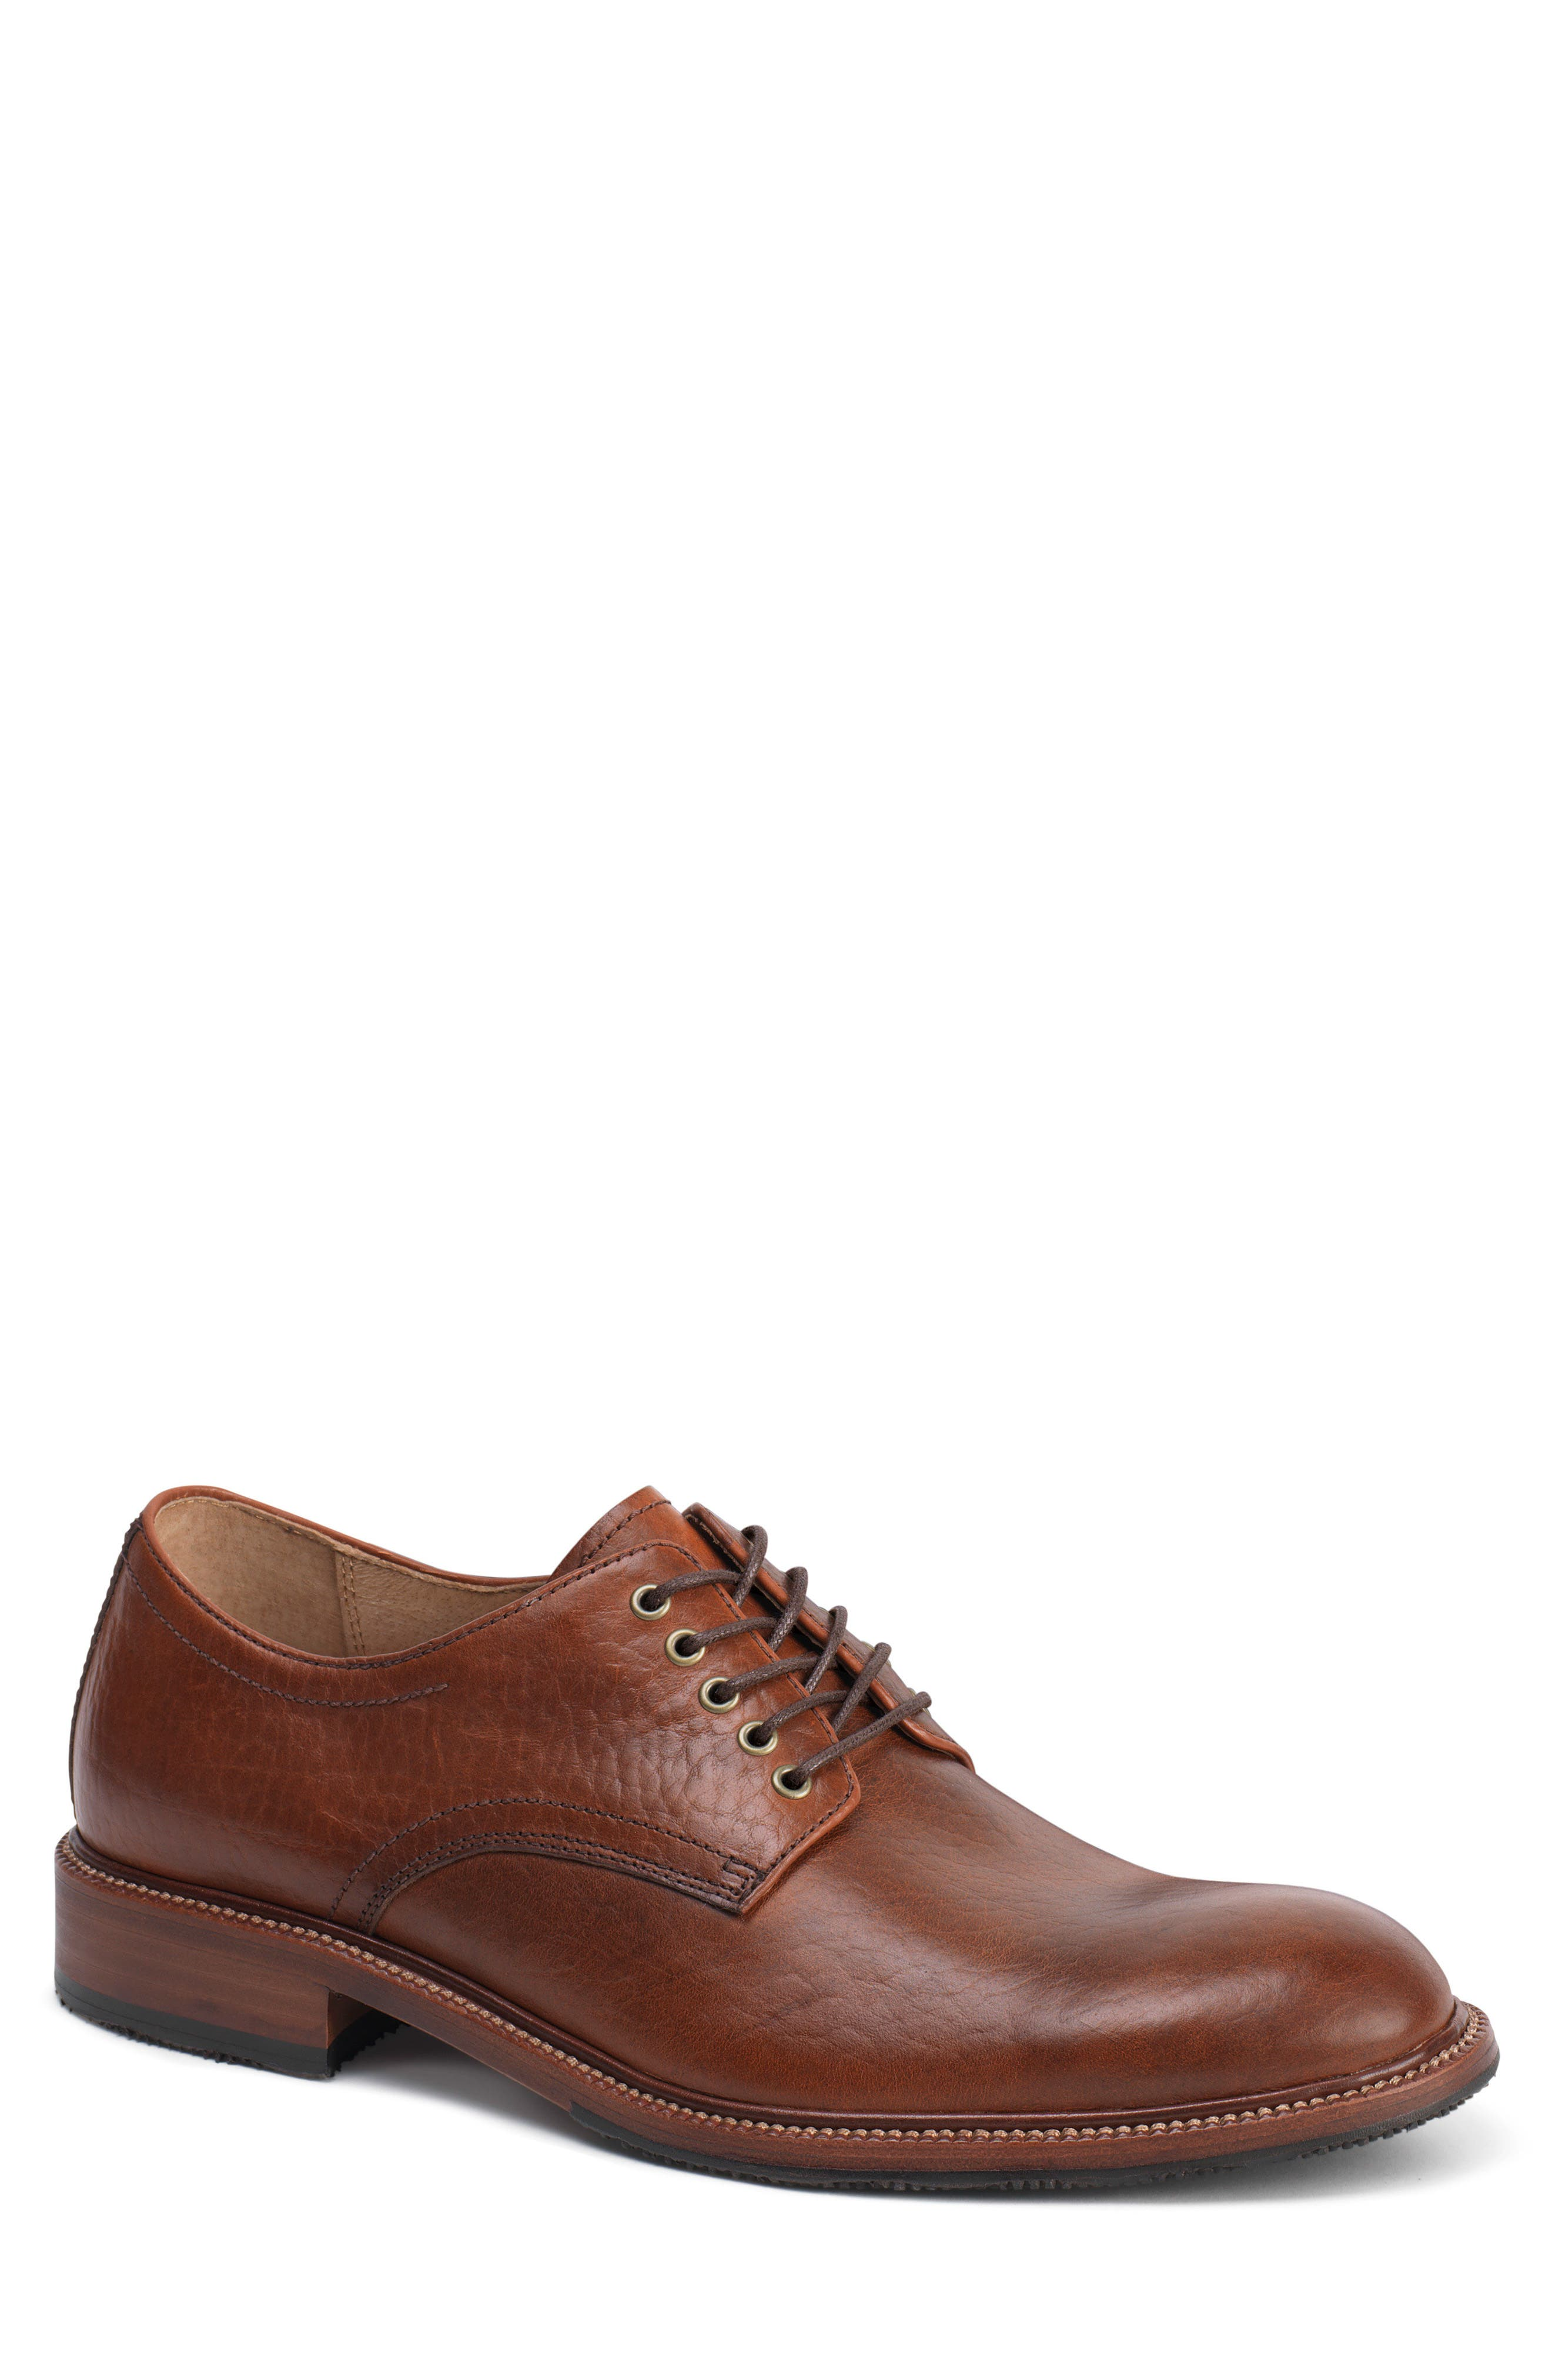 Main Image - Trask Landry Plain Toe Derby (Men)